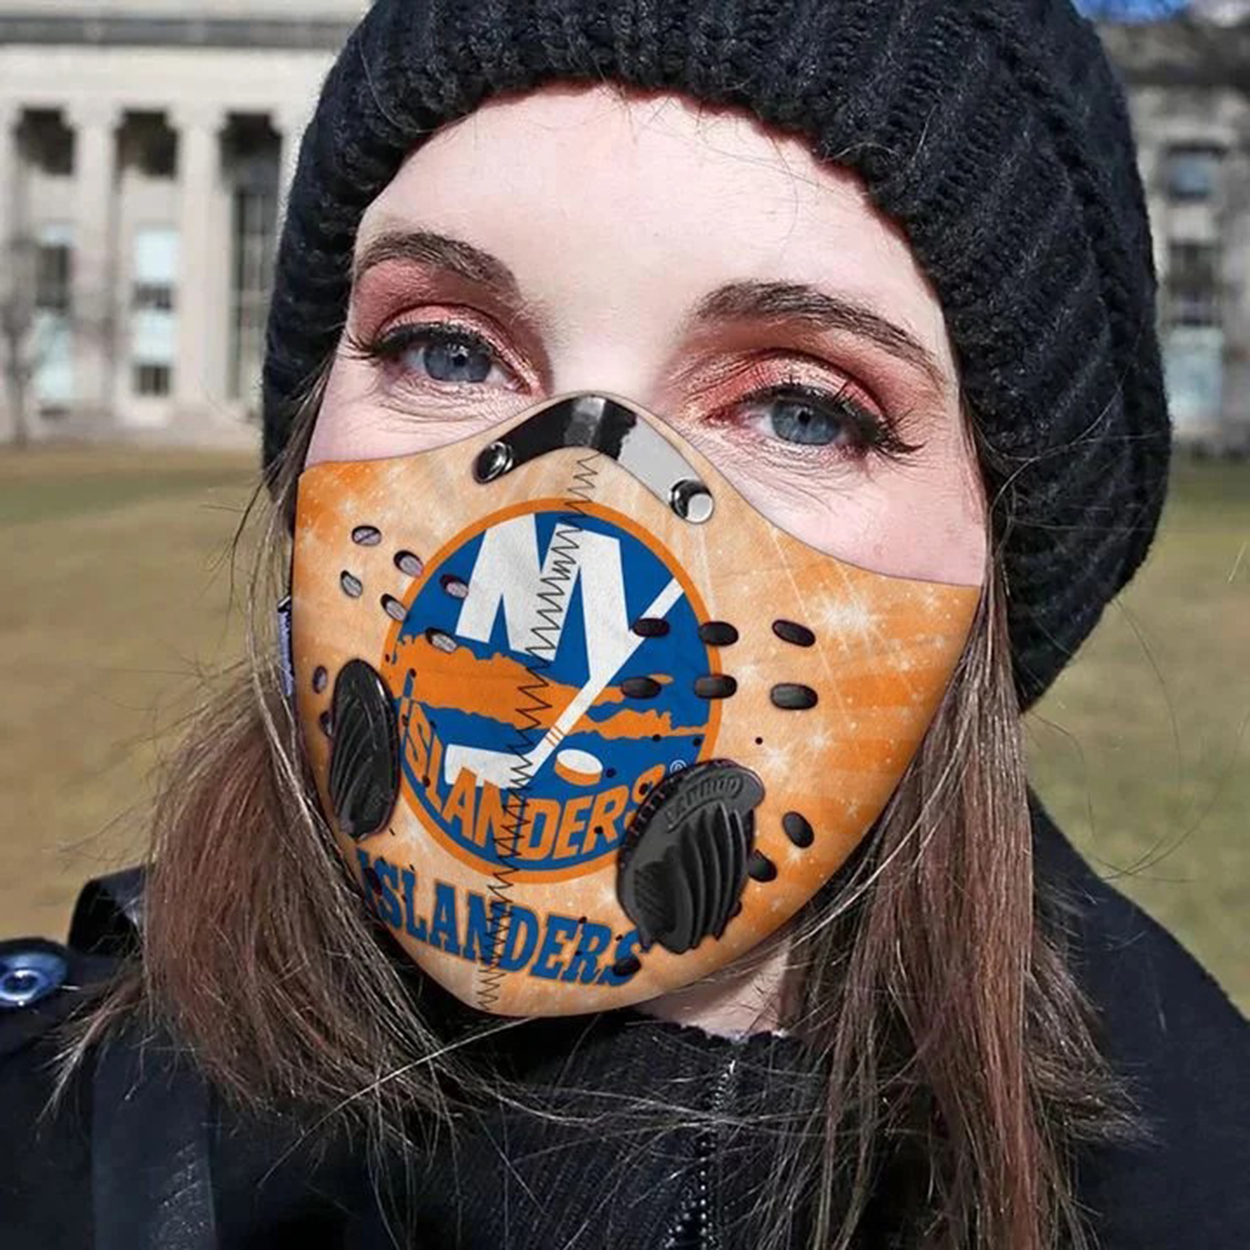 New york islanders filter face mask - Picture 1